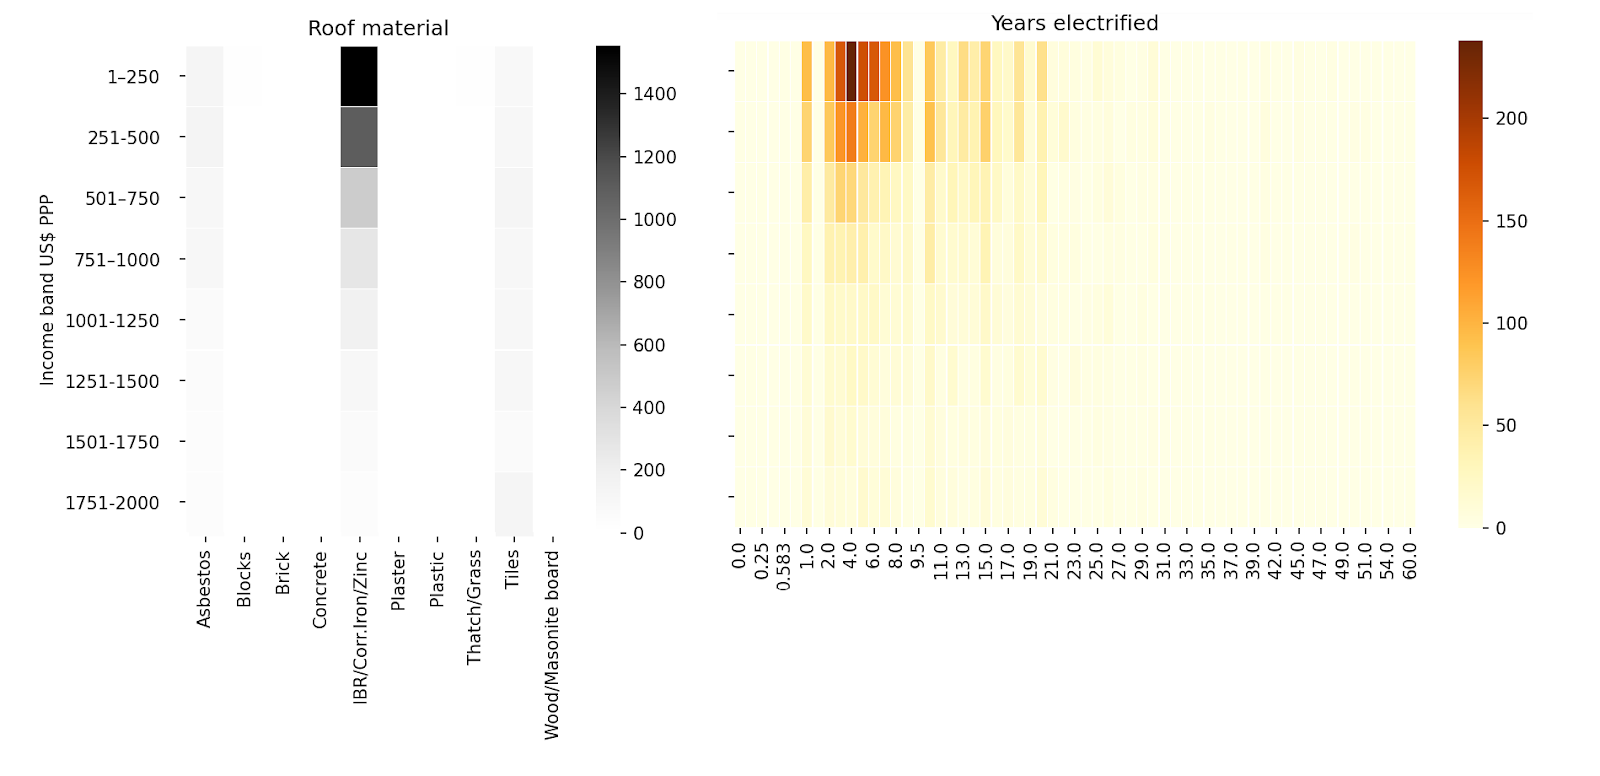 Figure 3: Occurrence of Roof Material Types and Years Electrified Chart: Omdena, Data: Domestic Electrical Load (DEL), South Africa[3]